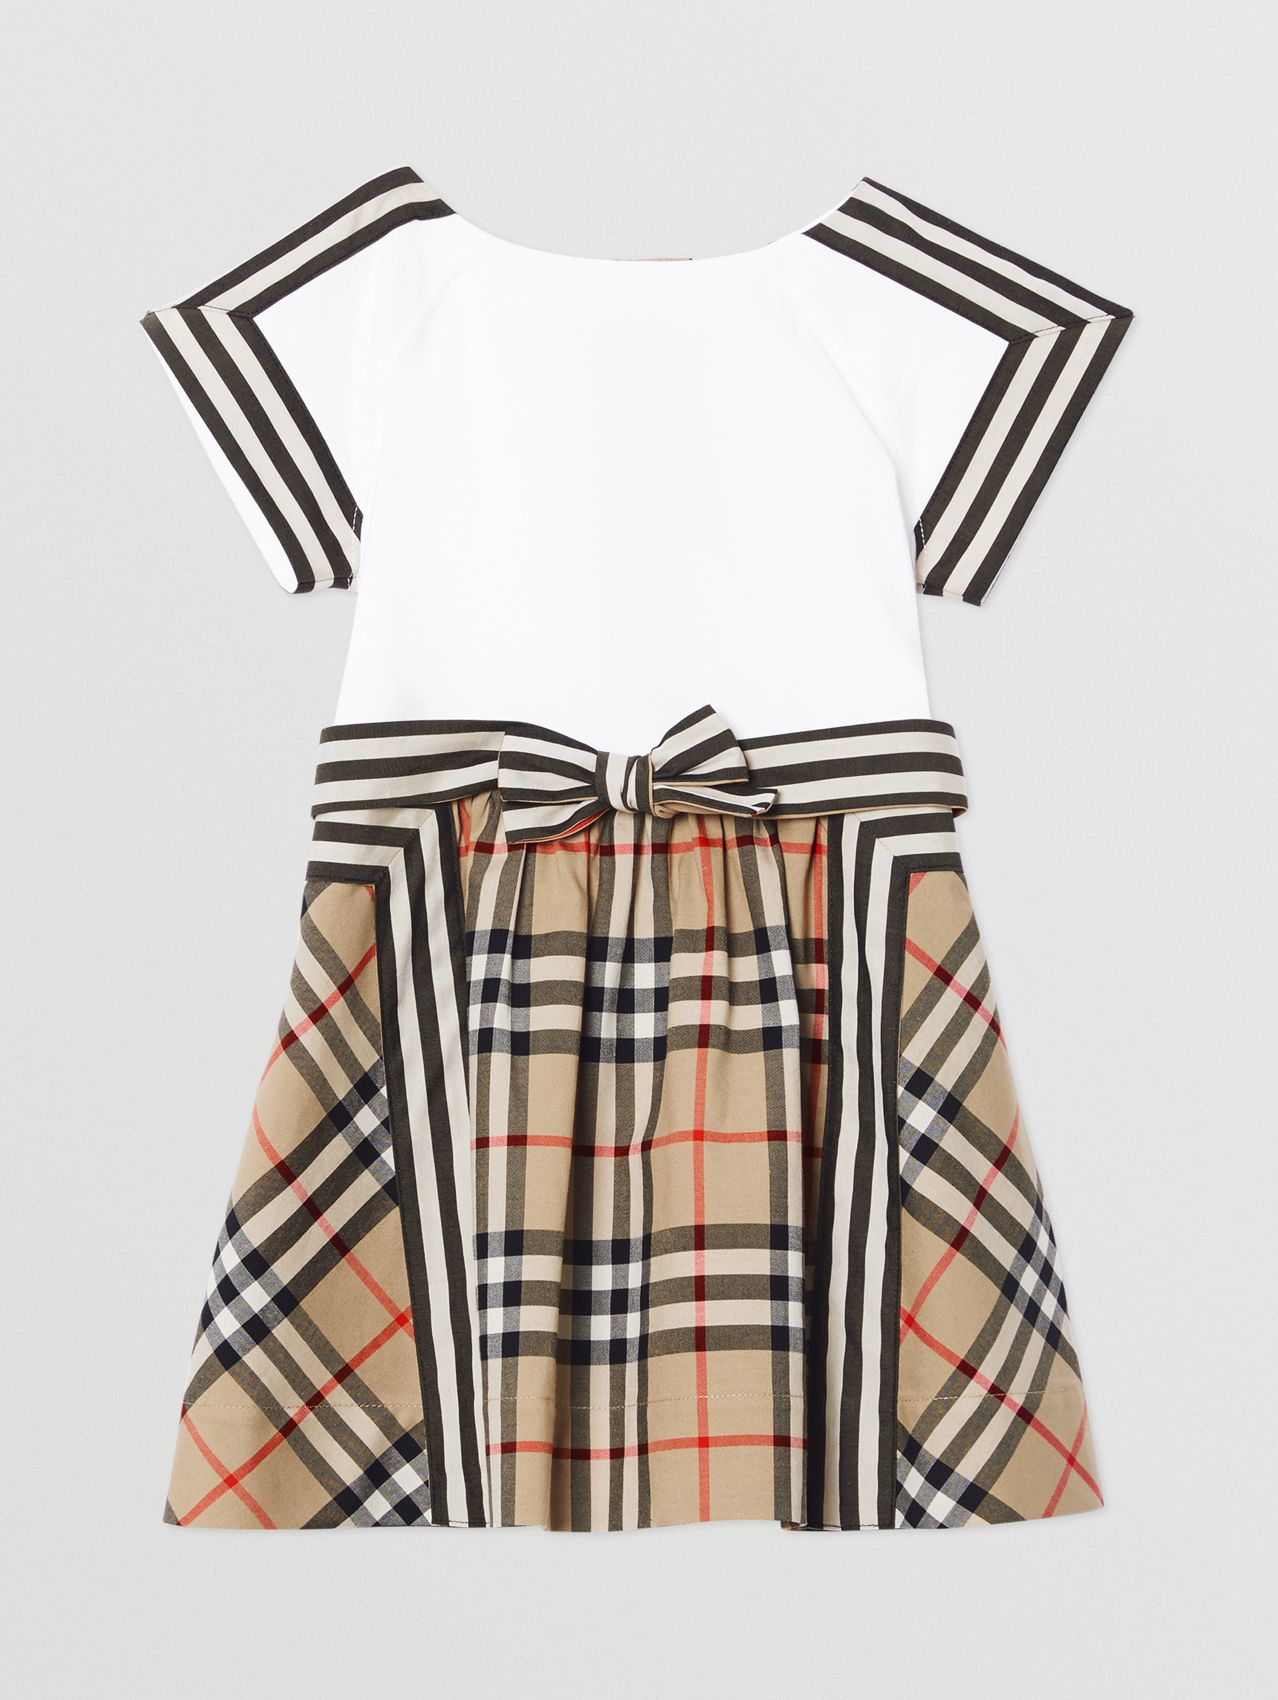 Vintage Check Detail Cotton Dress (Archive Beige)